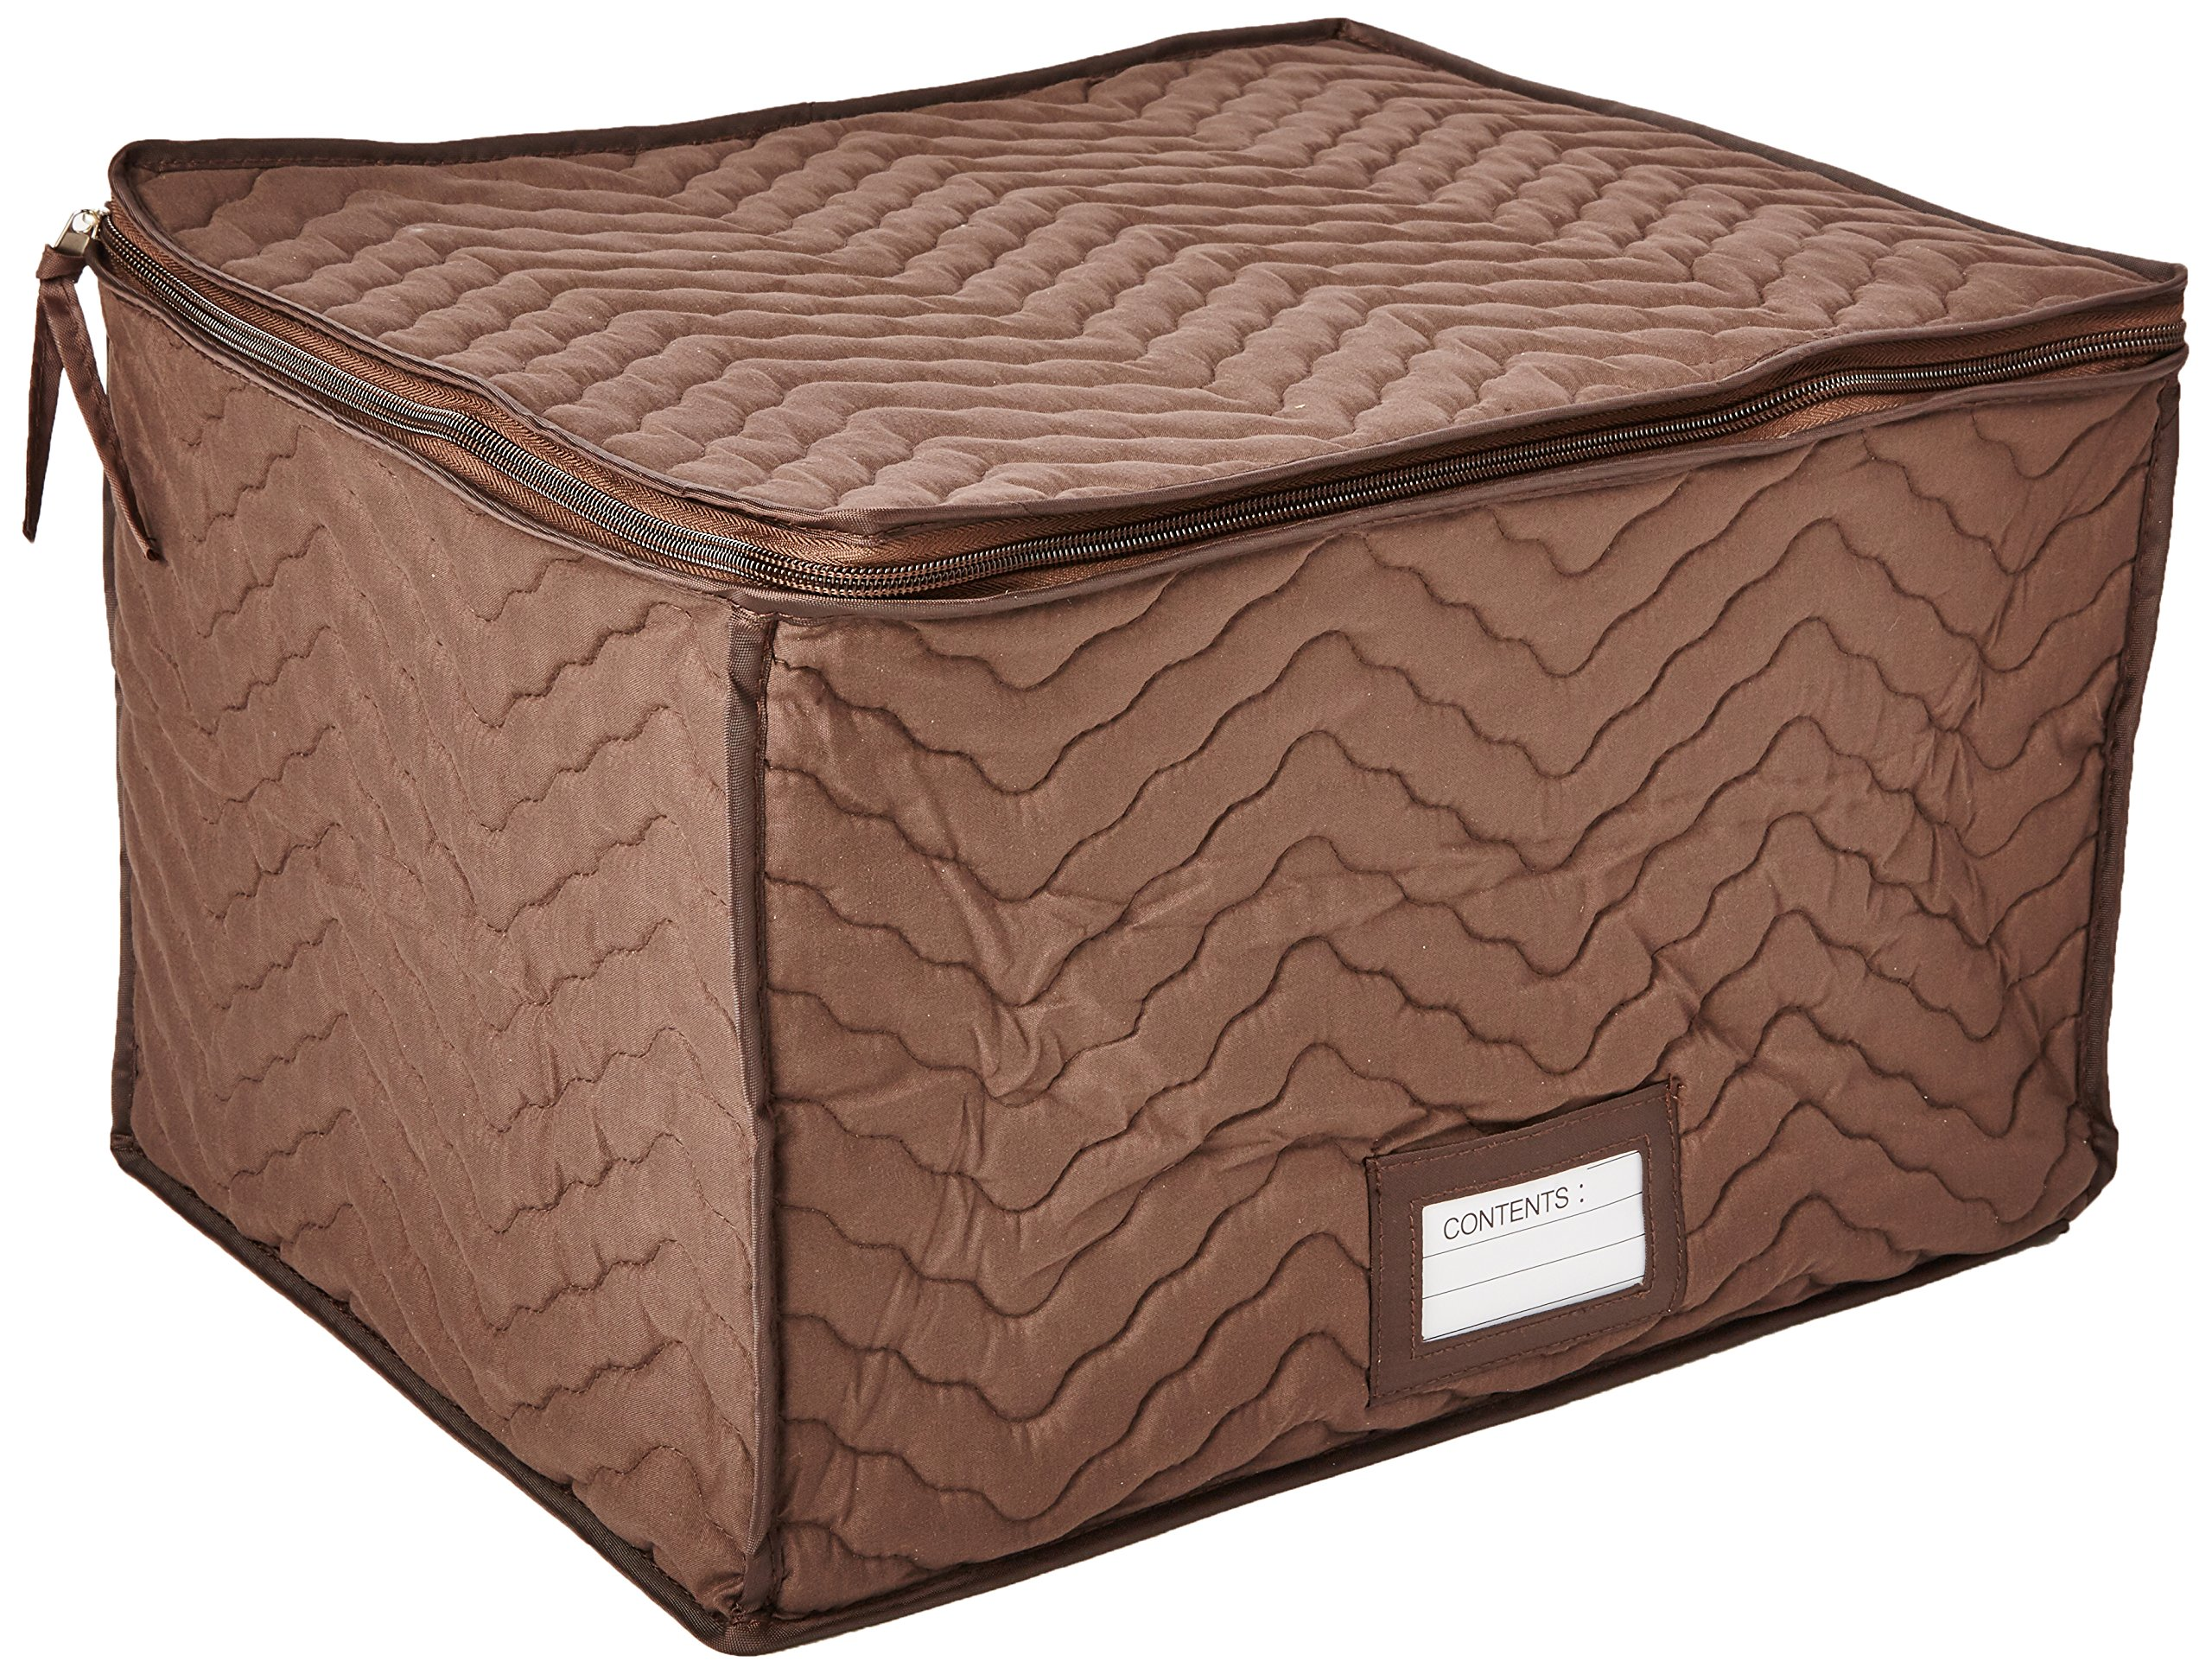 Hold N Storage Color Quilted Stemware Storage Case, Chocolate